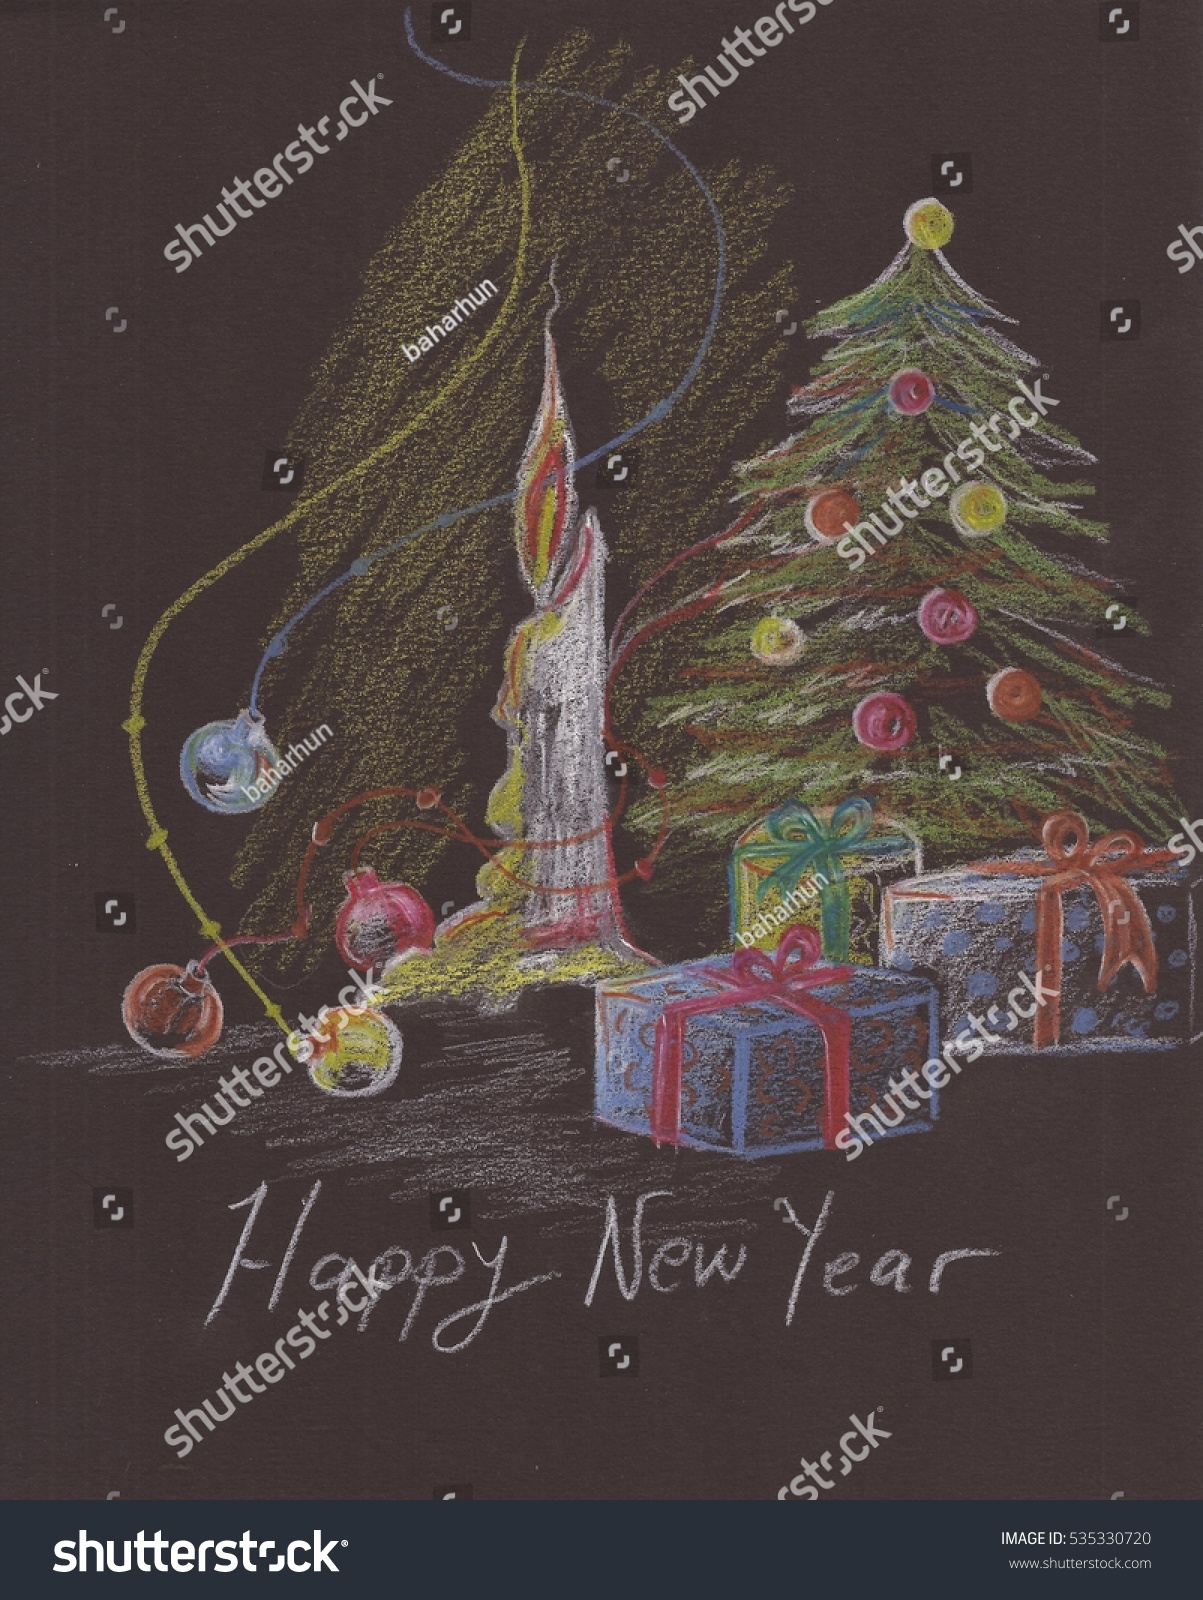 Christmas candle presents and tree with pencil drawing on black paper background